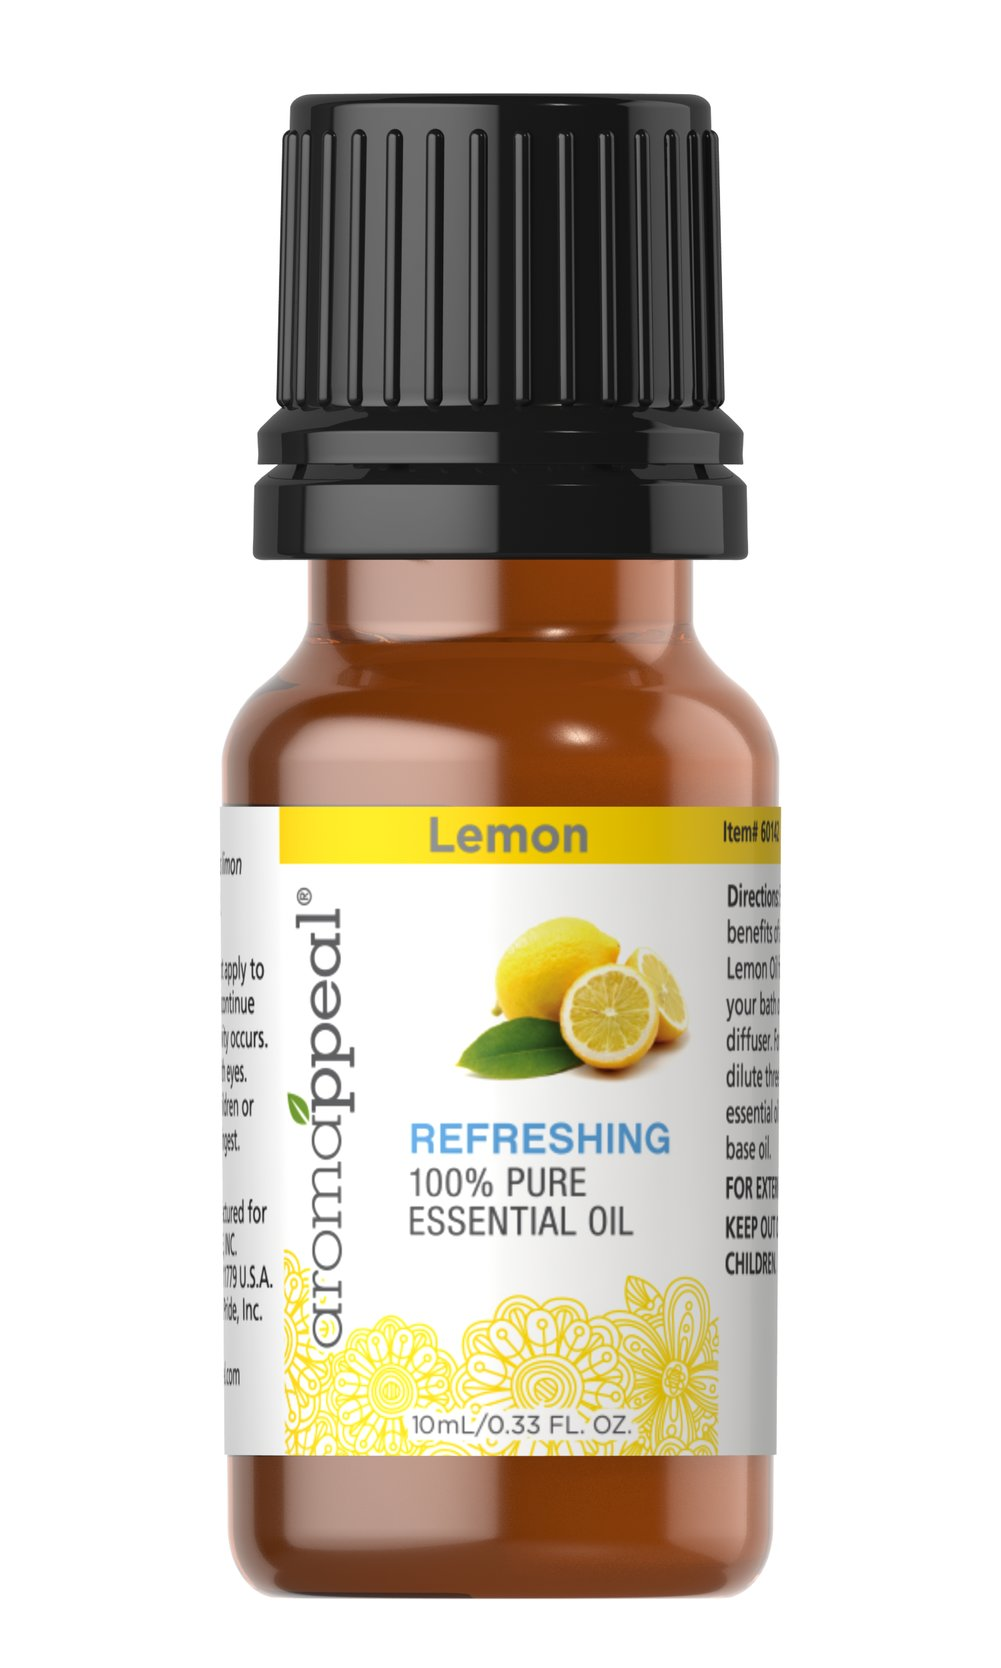 Lemon 100% Pure Essential Oil  10 ml Oil  $9.59